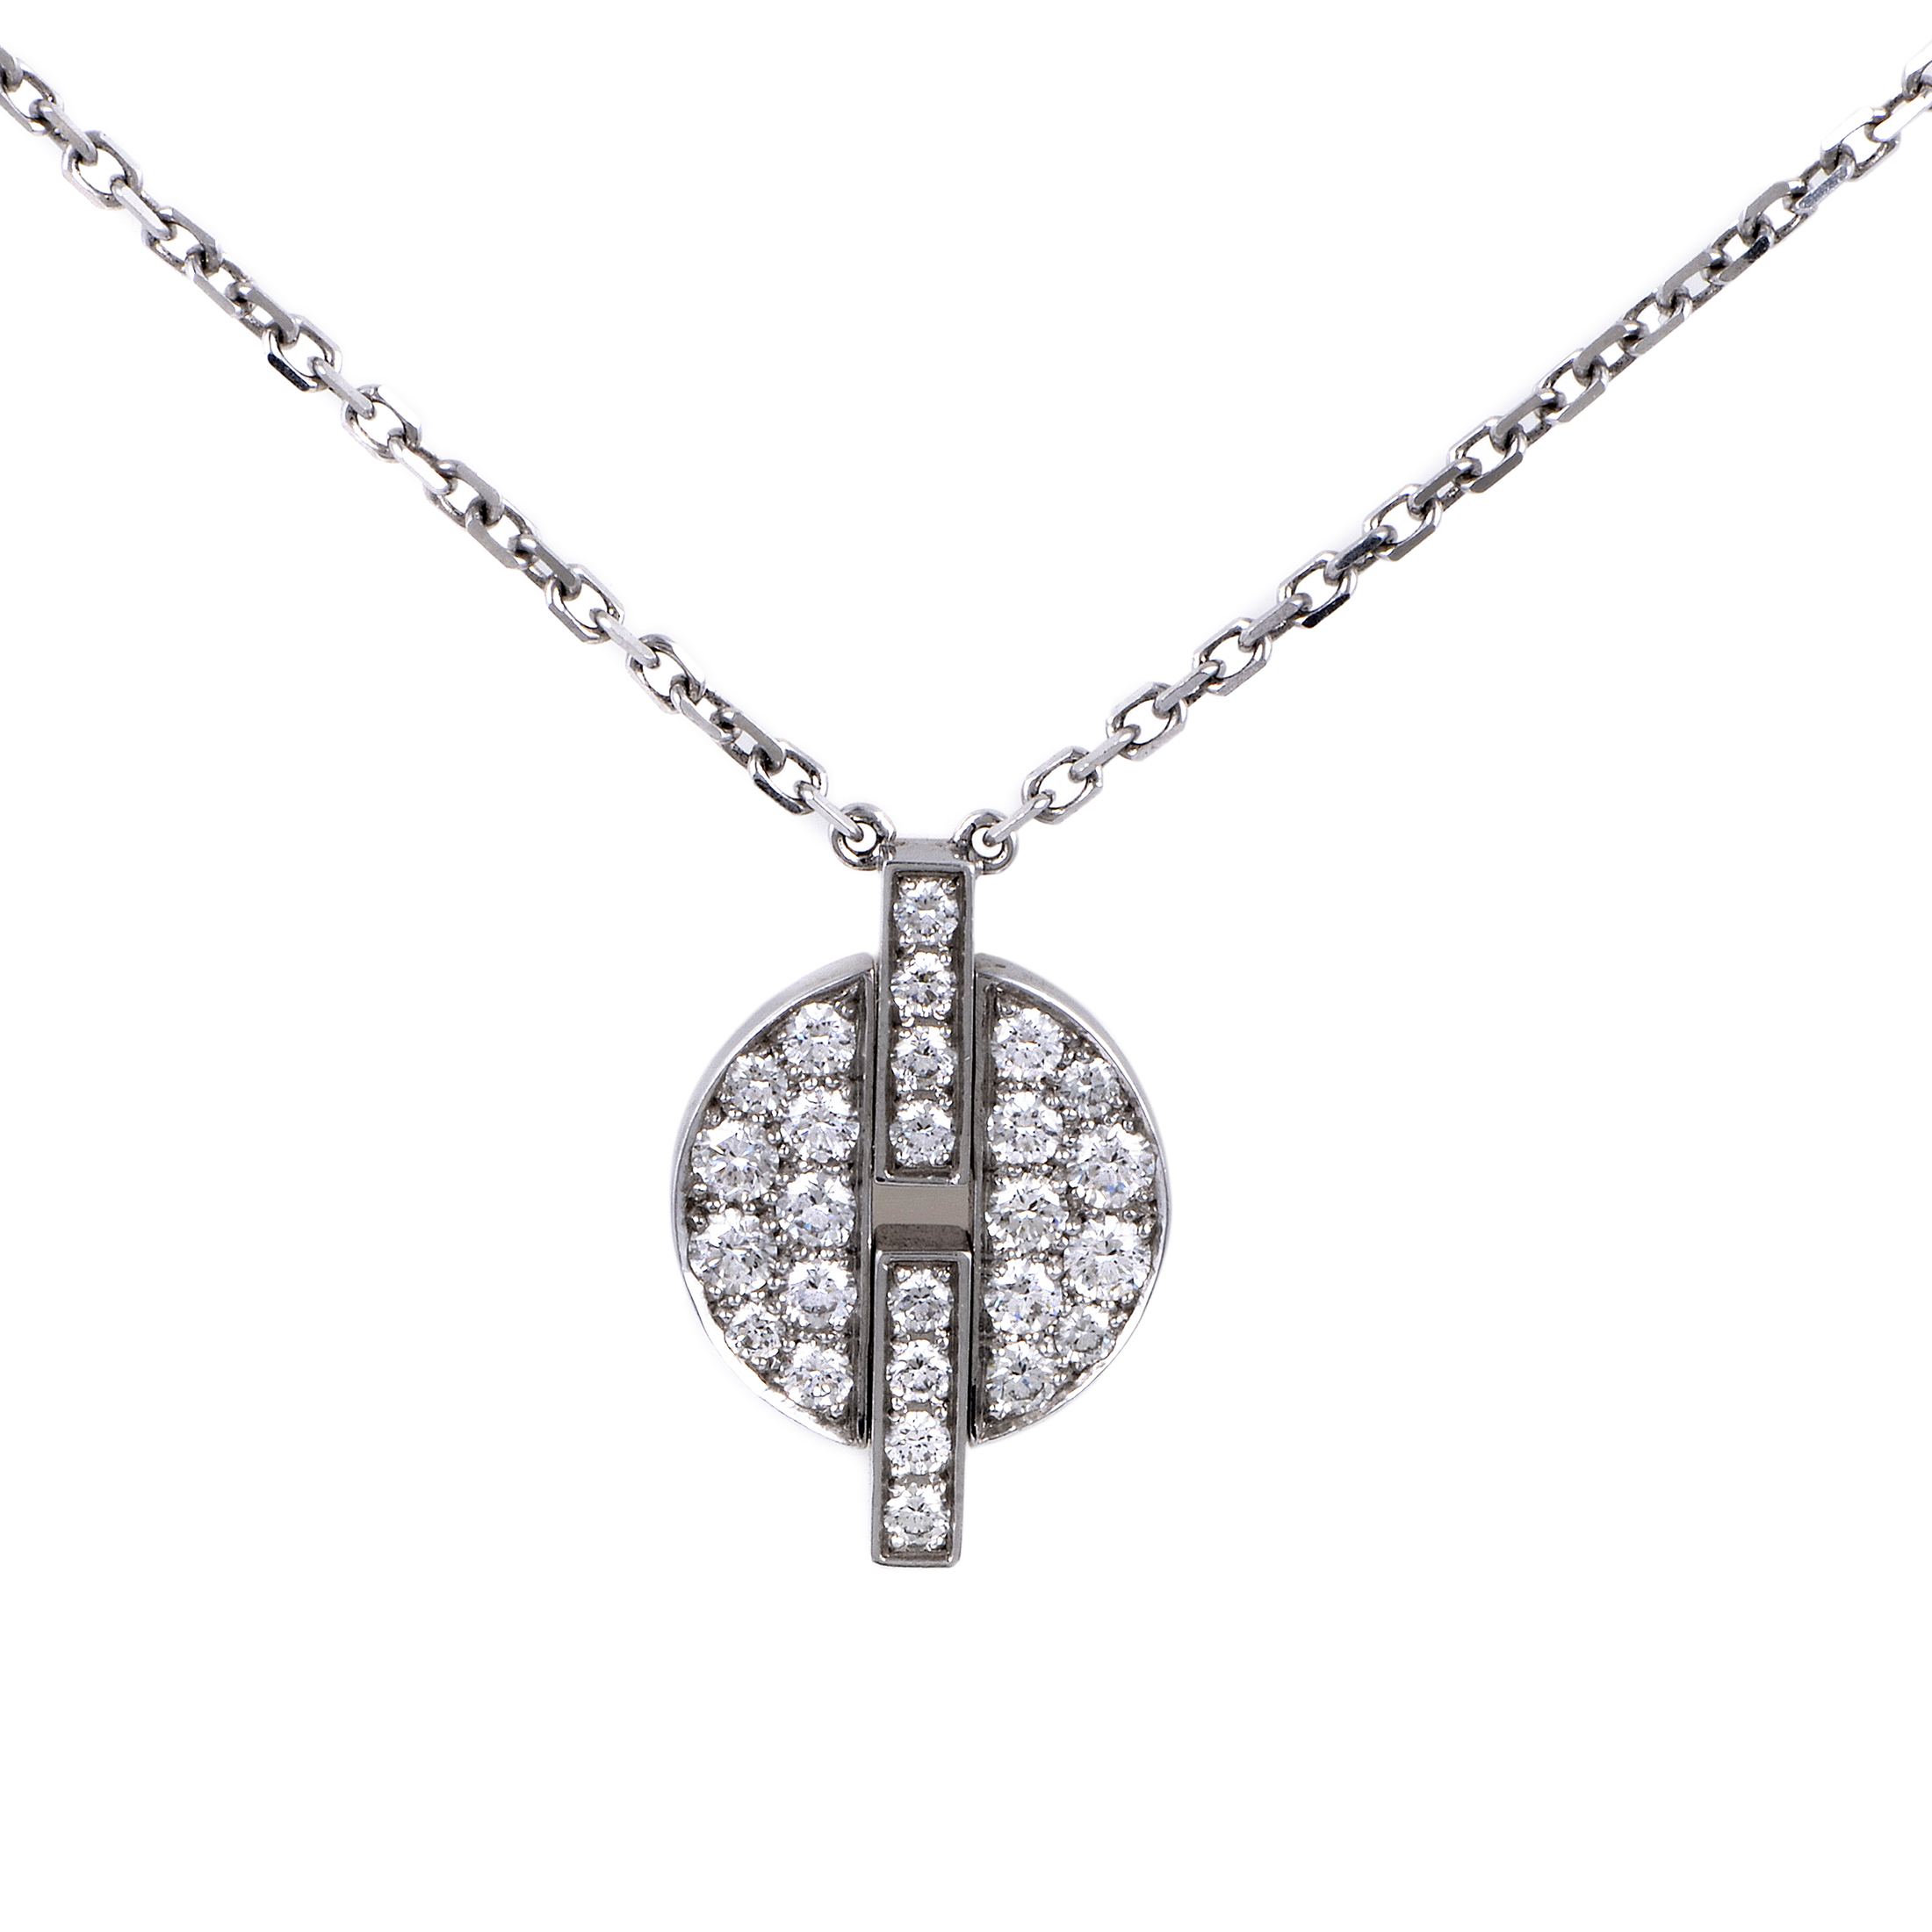 Cartier Diamond Pendant Necklace